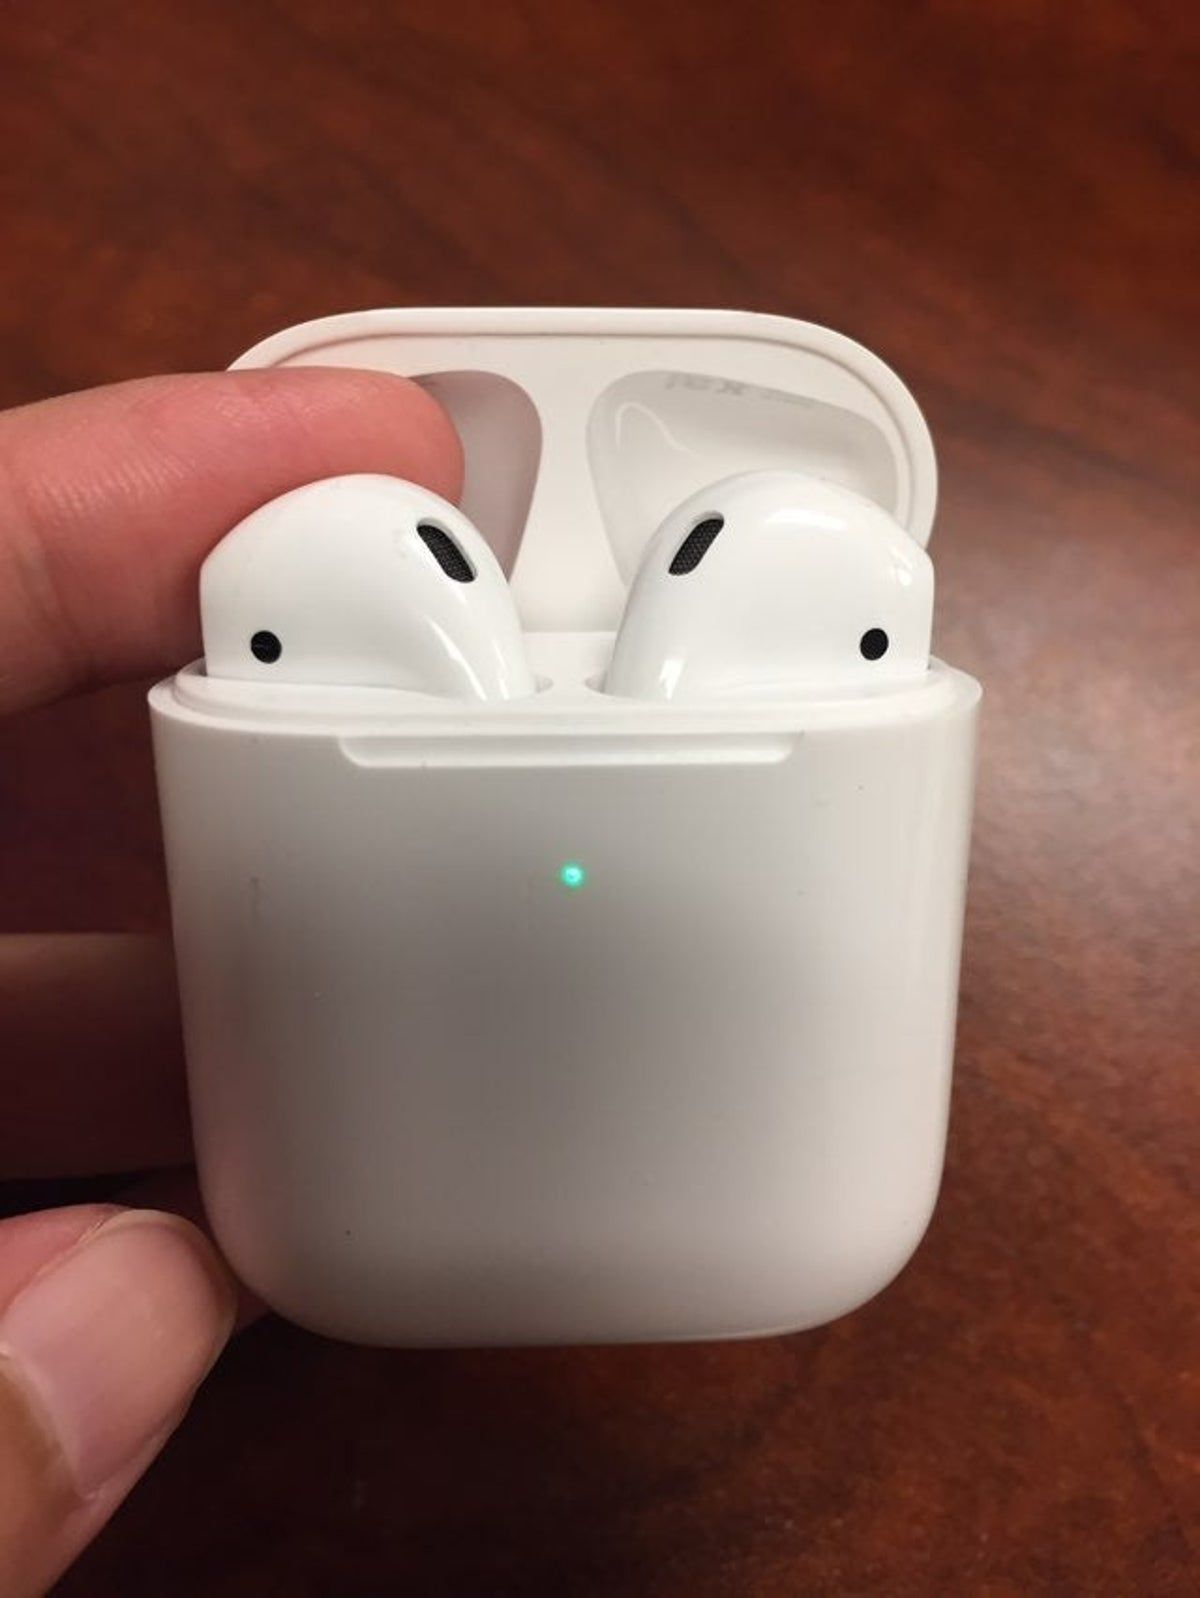 Airpods 2nd Generation Generic Android Apple Brand Iphone Earbuds Cool Electronics